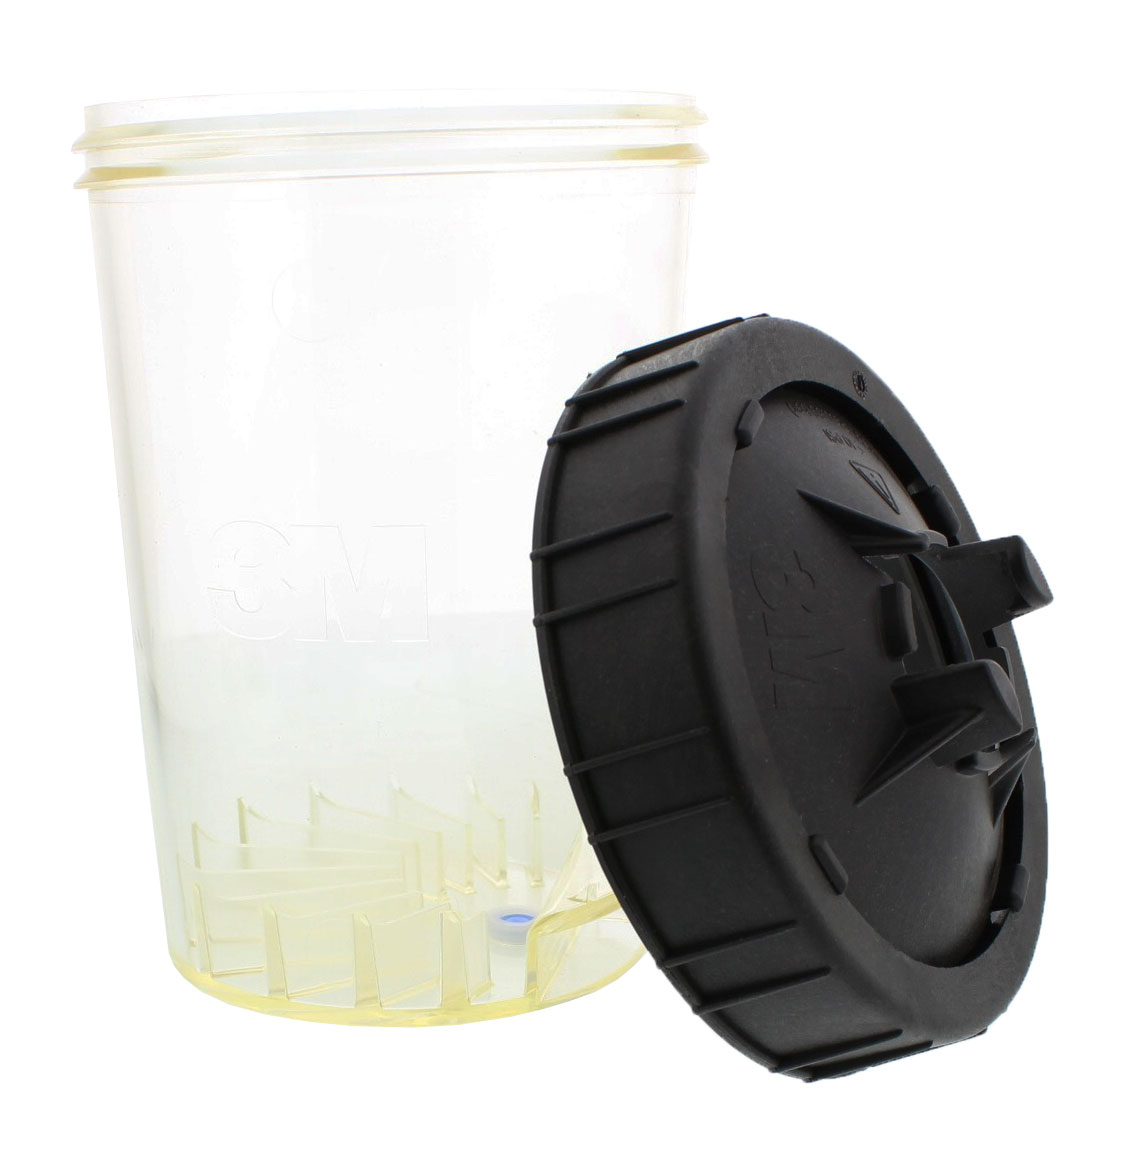 3M 16124 PPS Type H//O Large Pressure Cup